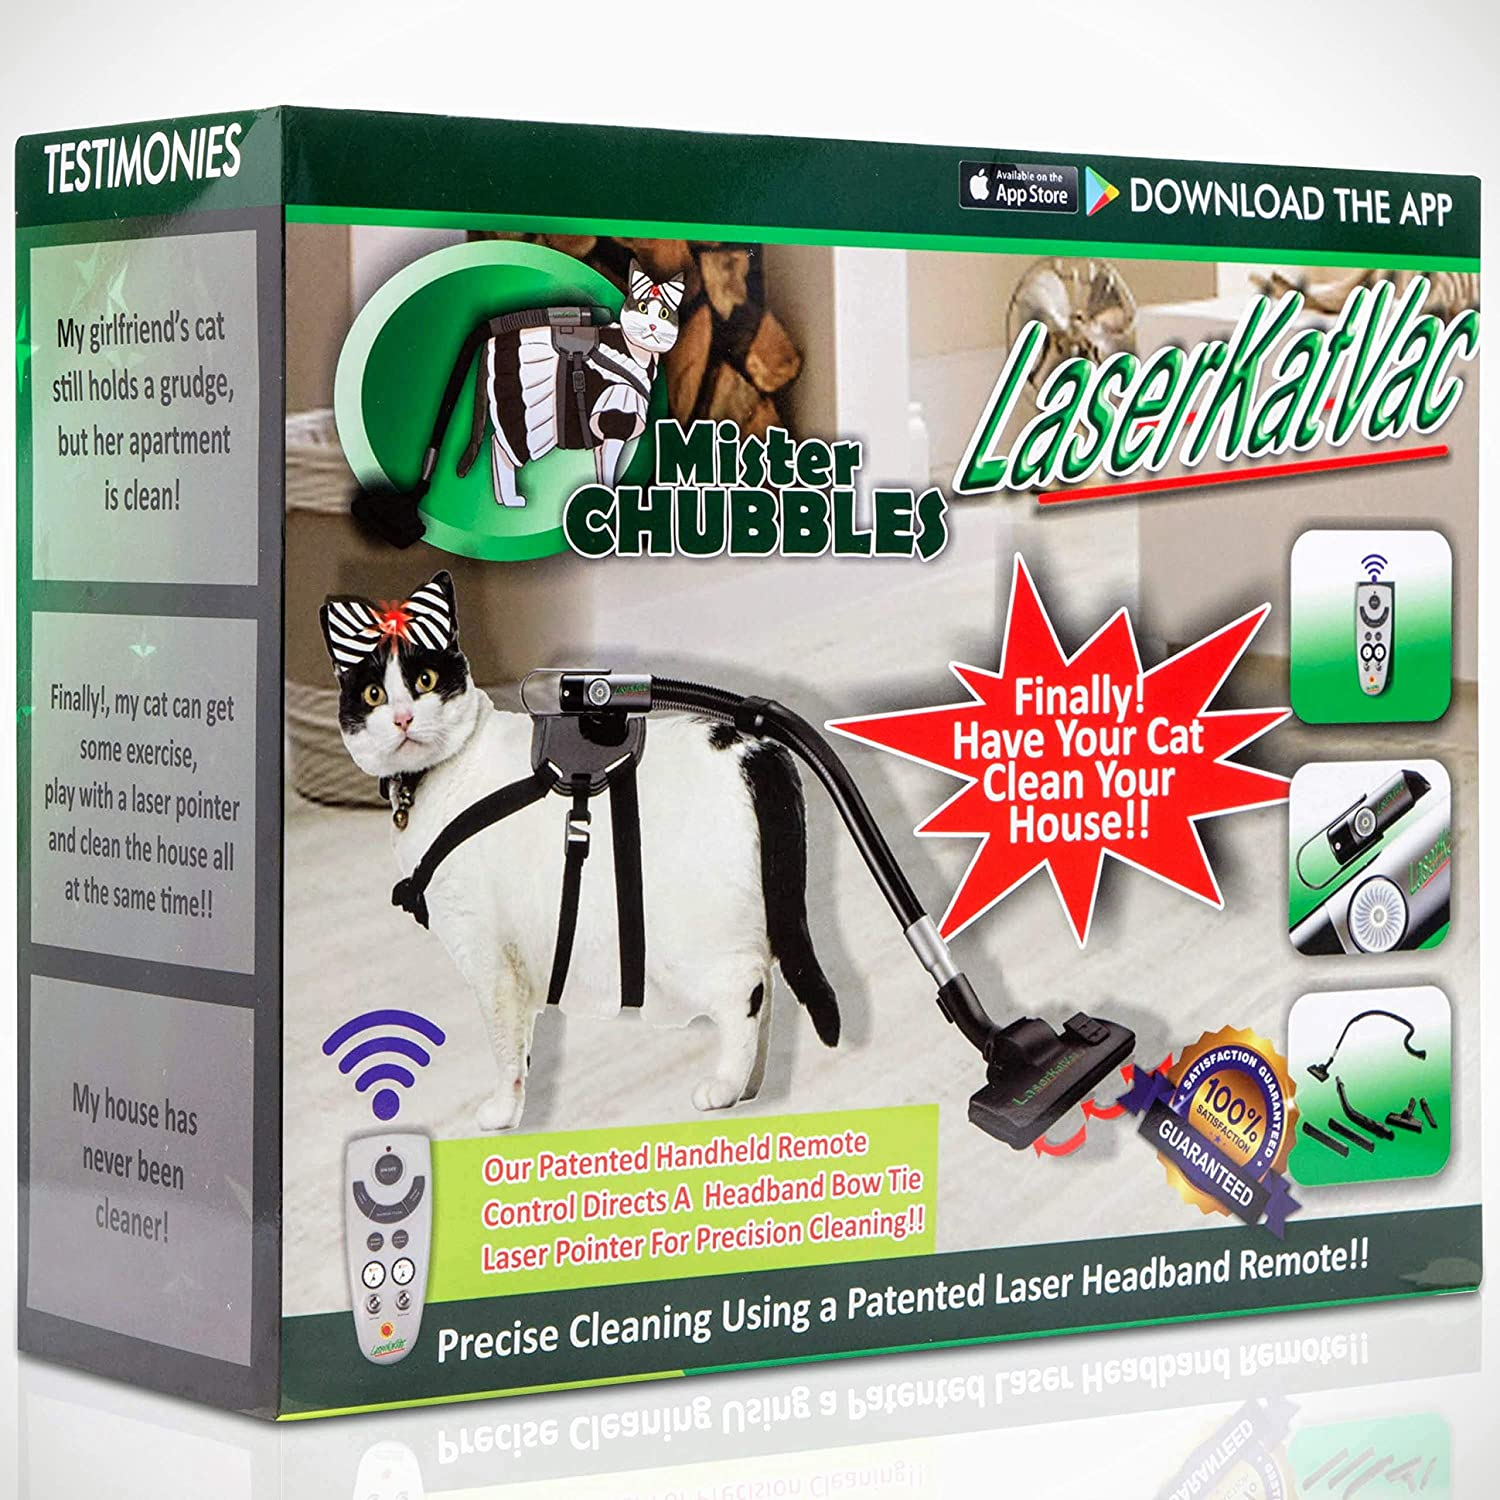 Prank Gift Boxes, Inc. LaserKatVac! Prank Box for Adult or Kids! Prank Gift Box / Gag Box for Fun Present Giving! The Fake Joke Box for Lovers of Funny Gag Gifts and Funny Pranks